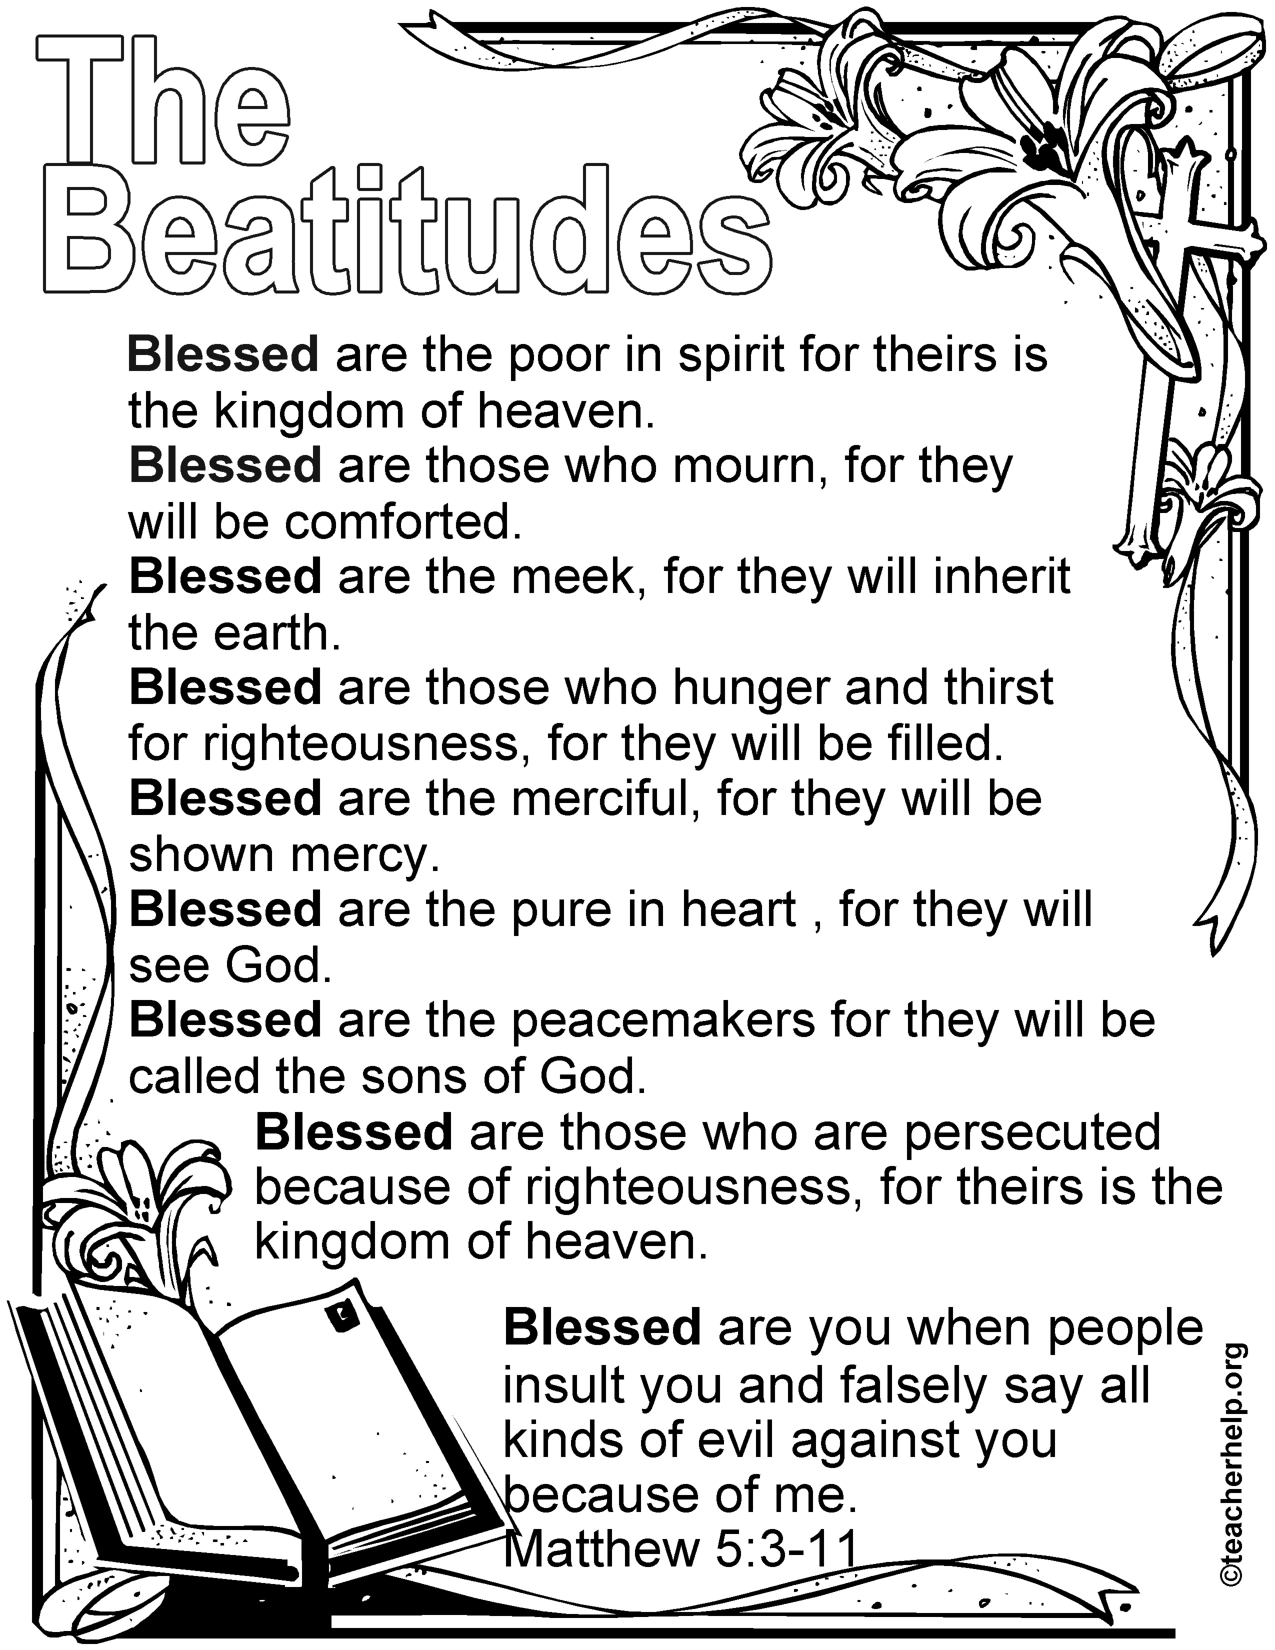 Guided by the Beatitudes Bloor